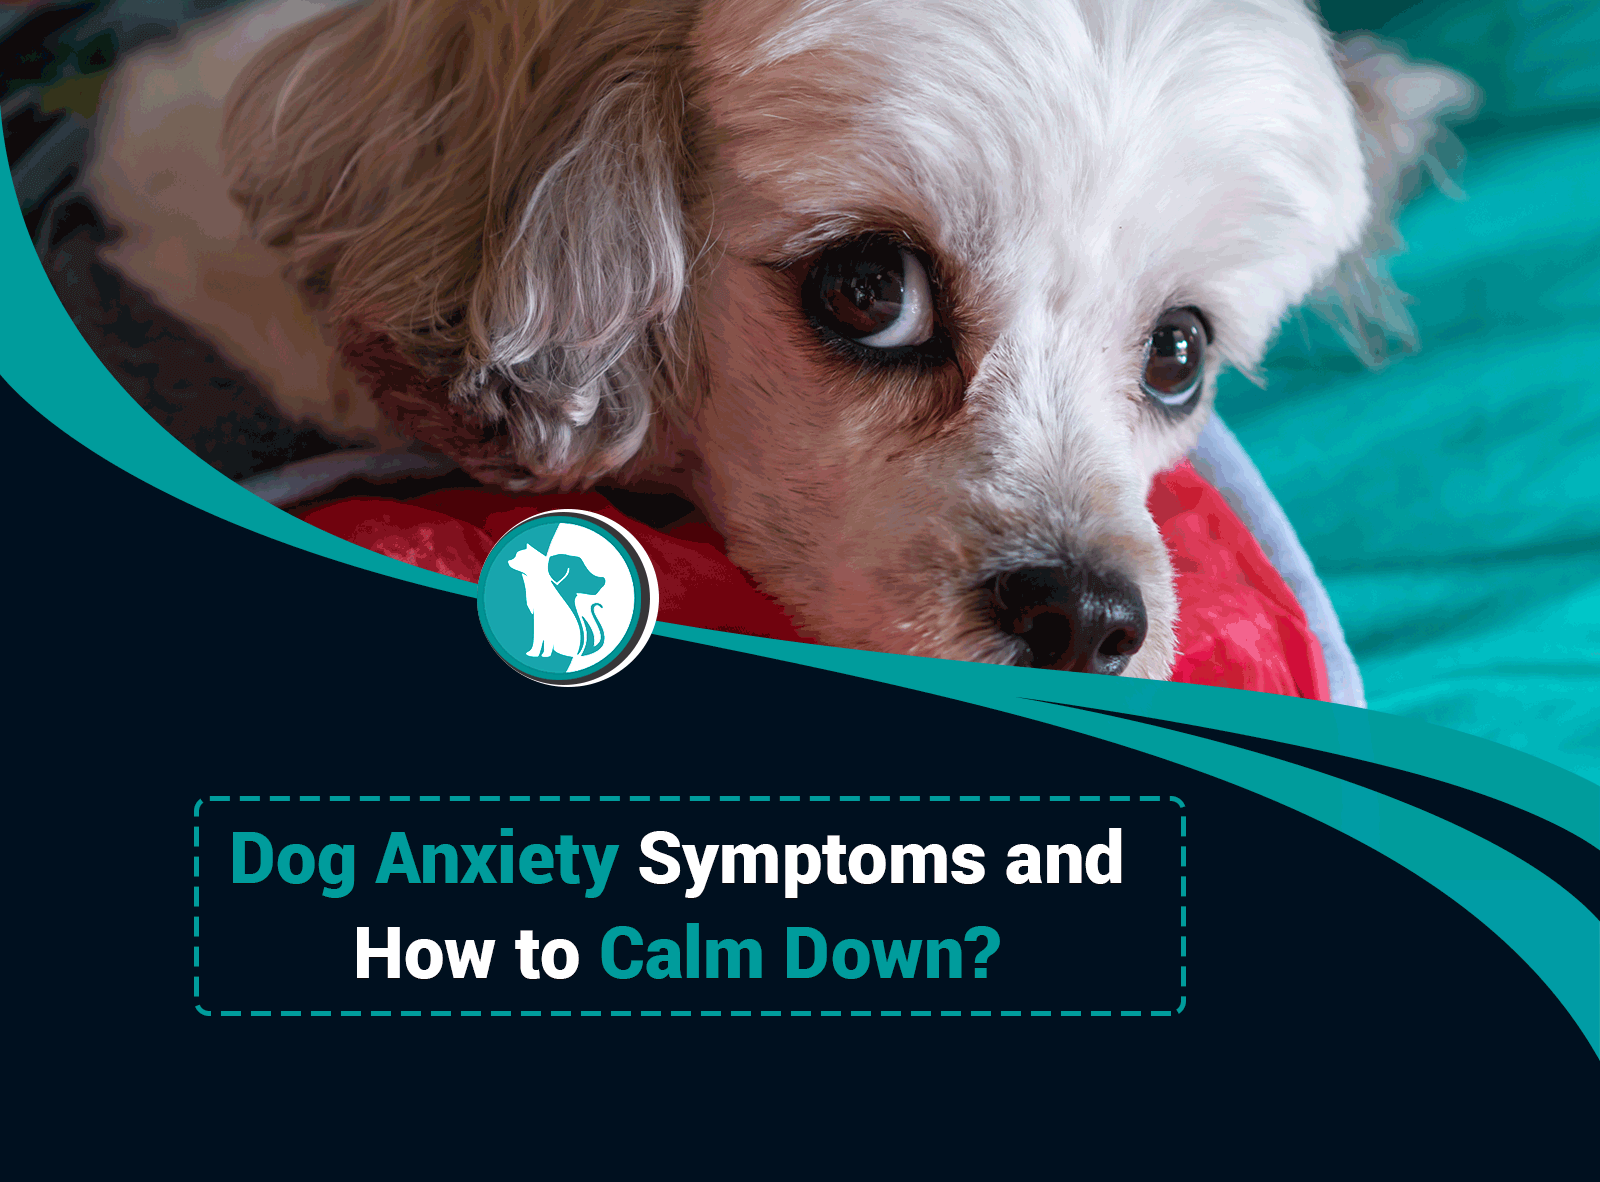 Dog Anxiety Symptoms and How to Calm Down